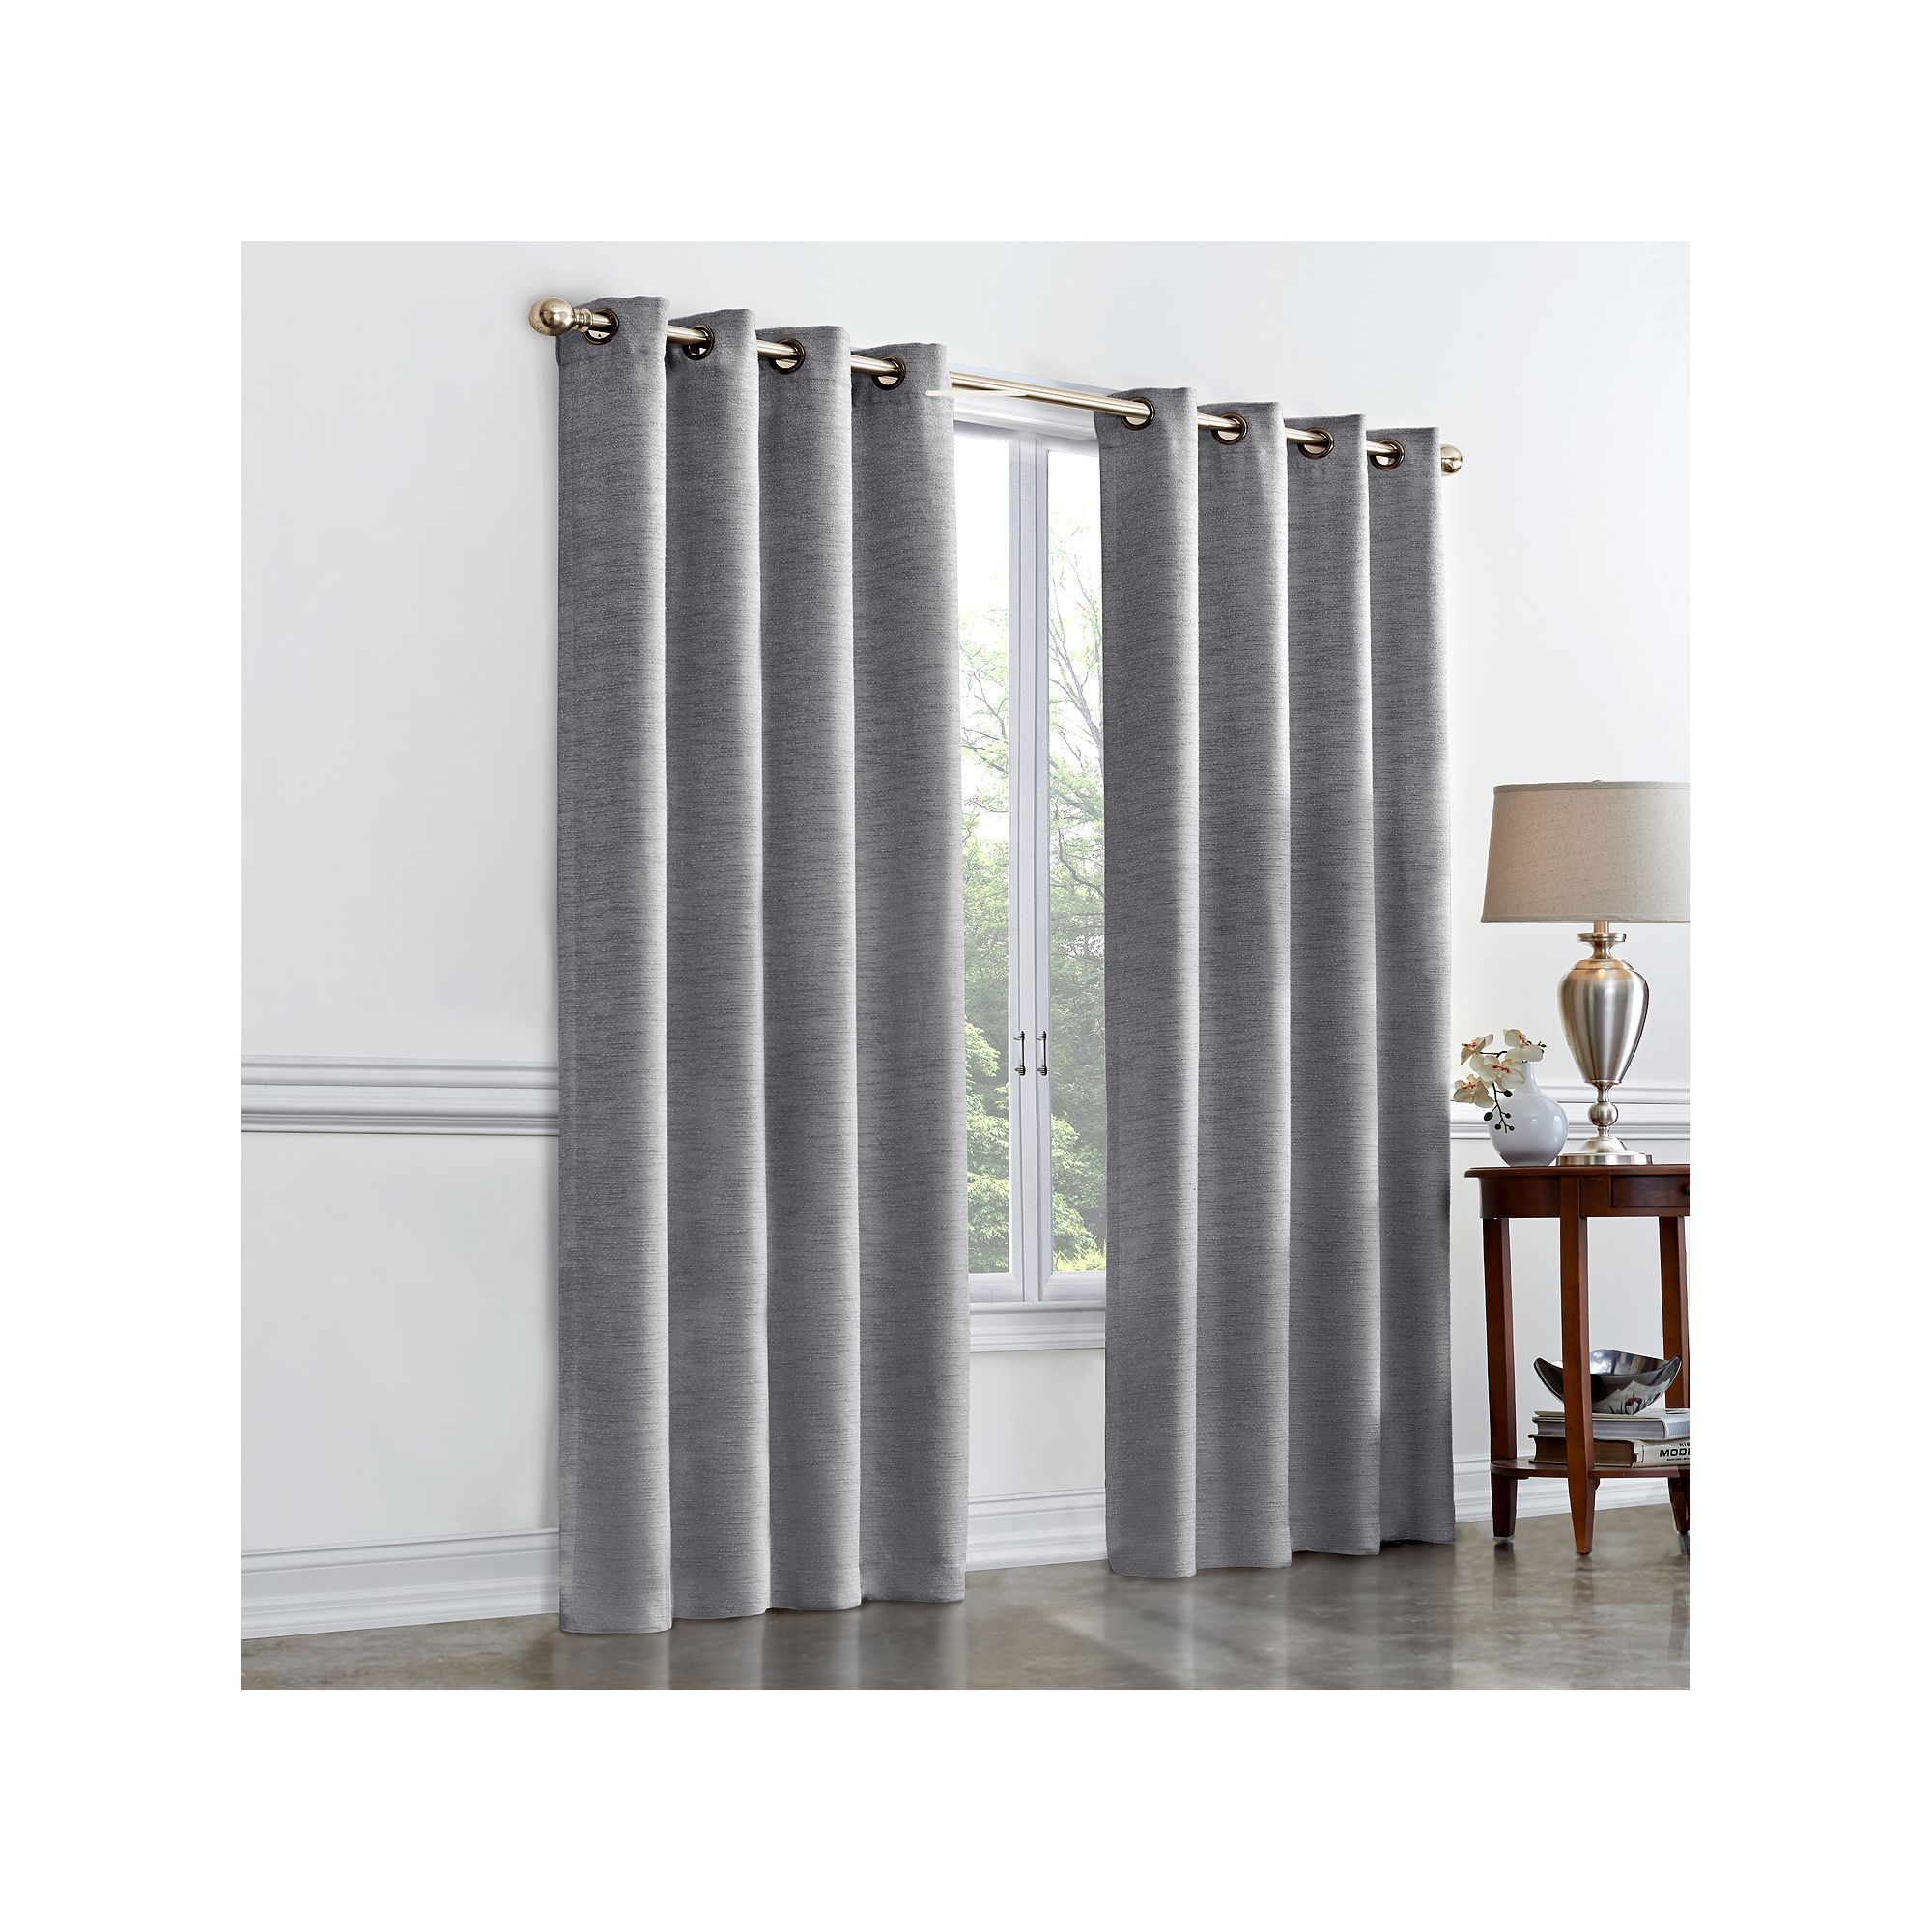 Regent Court Hayden Room Darkening Curtain, Grey | Products Regarding Hayden Rod Pocket Blackout Panels (View 19 of 20)